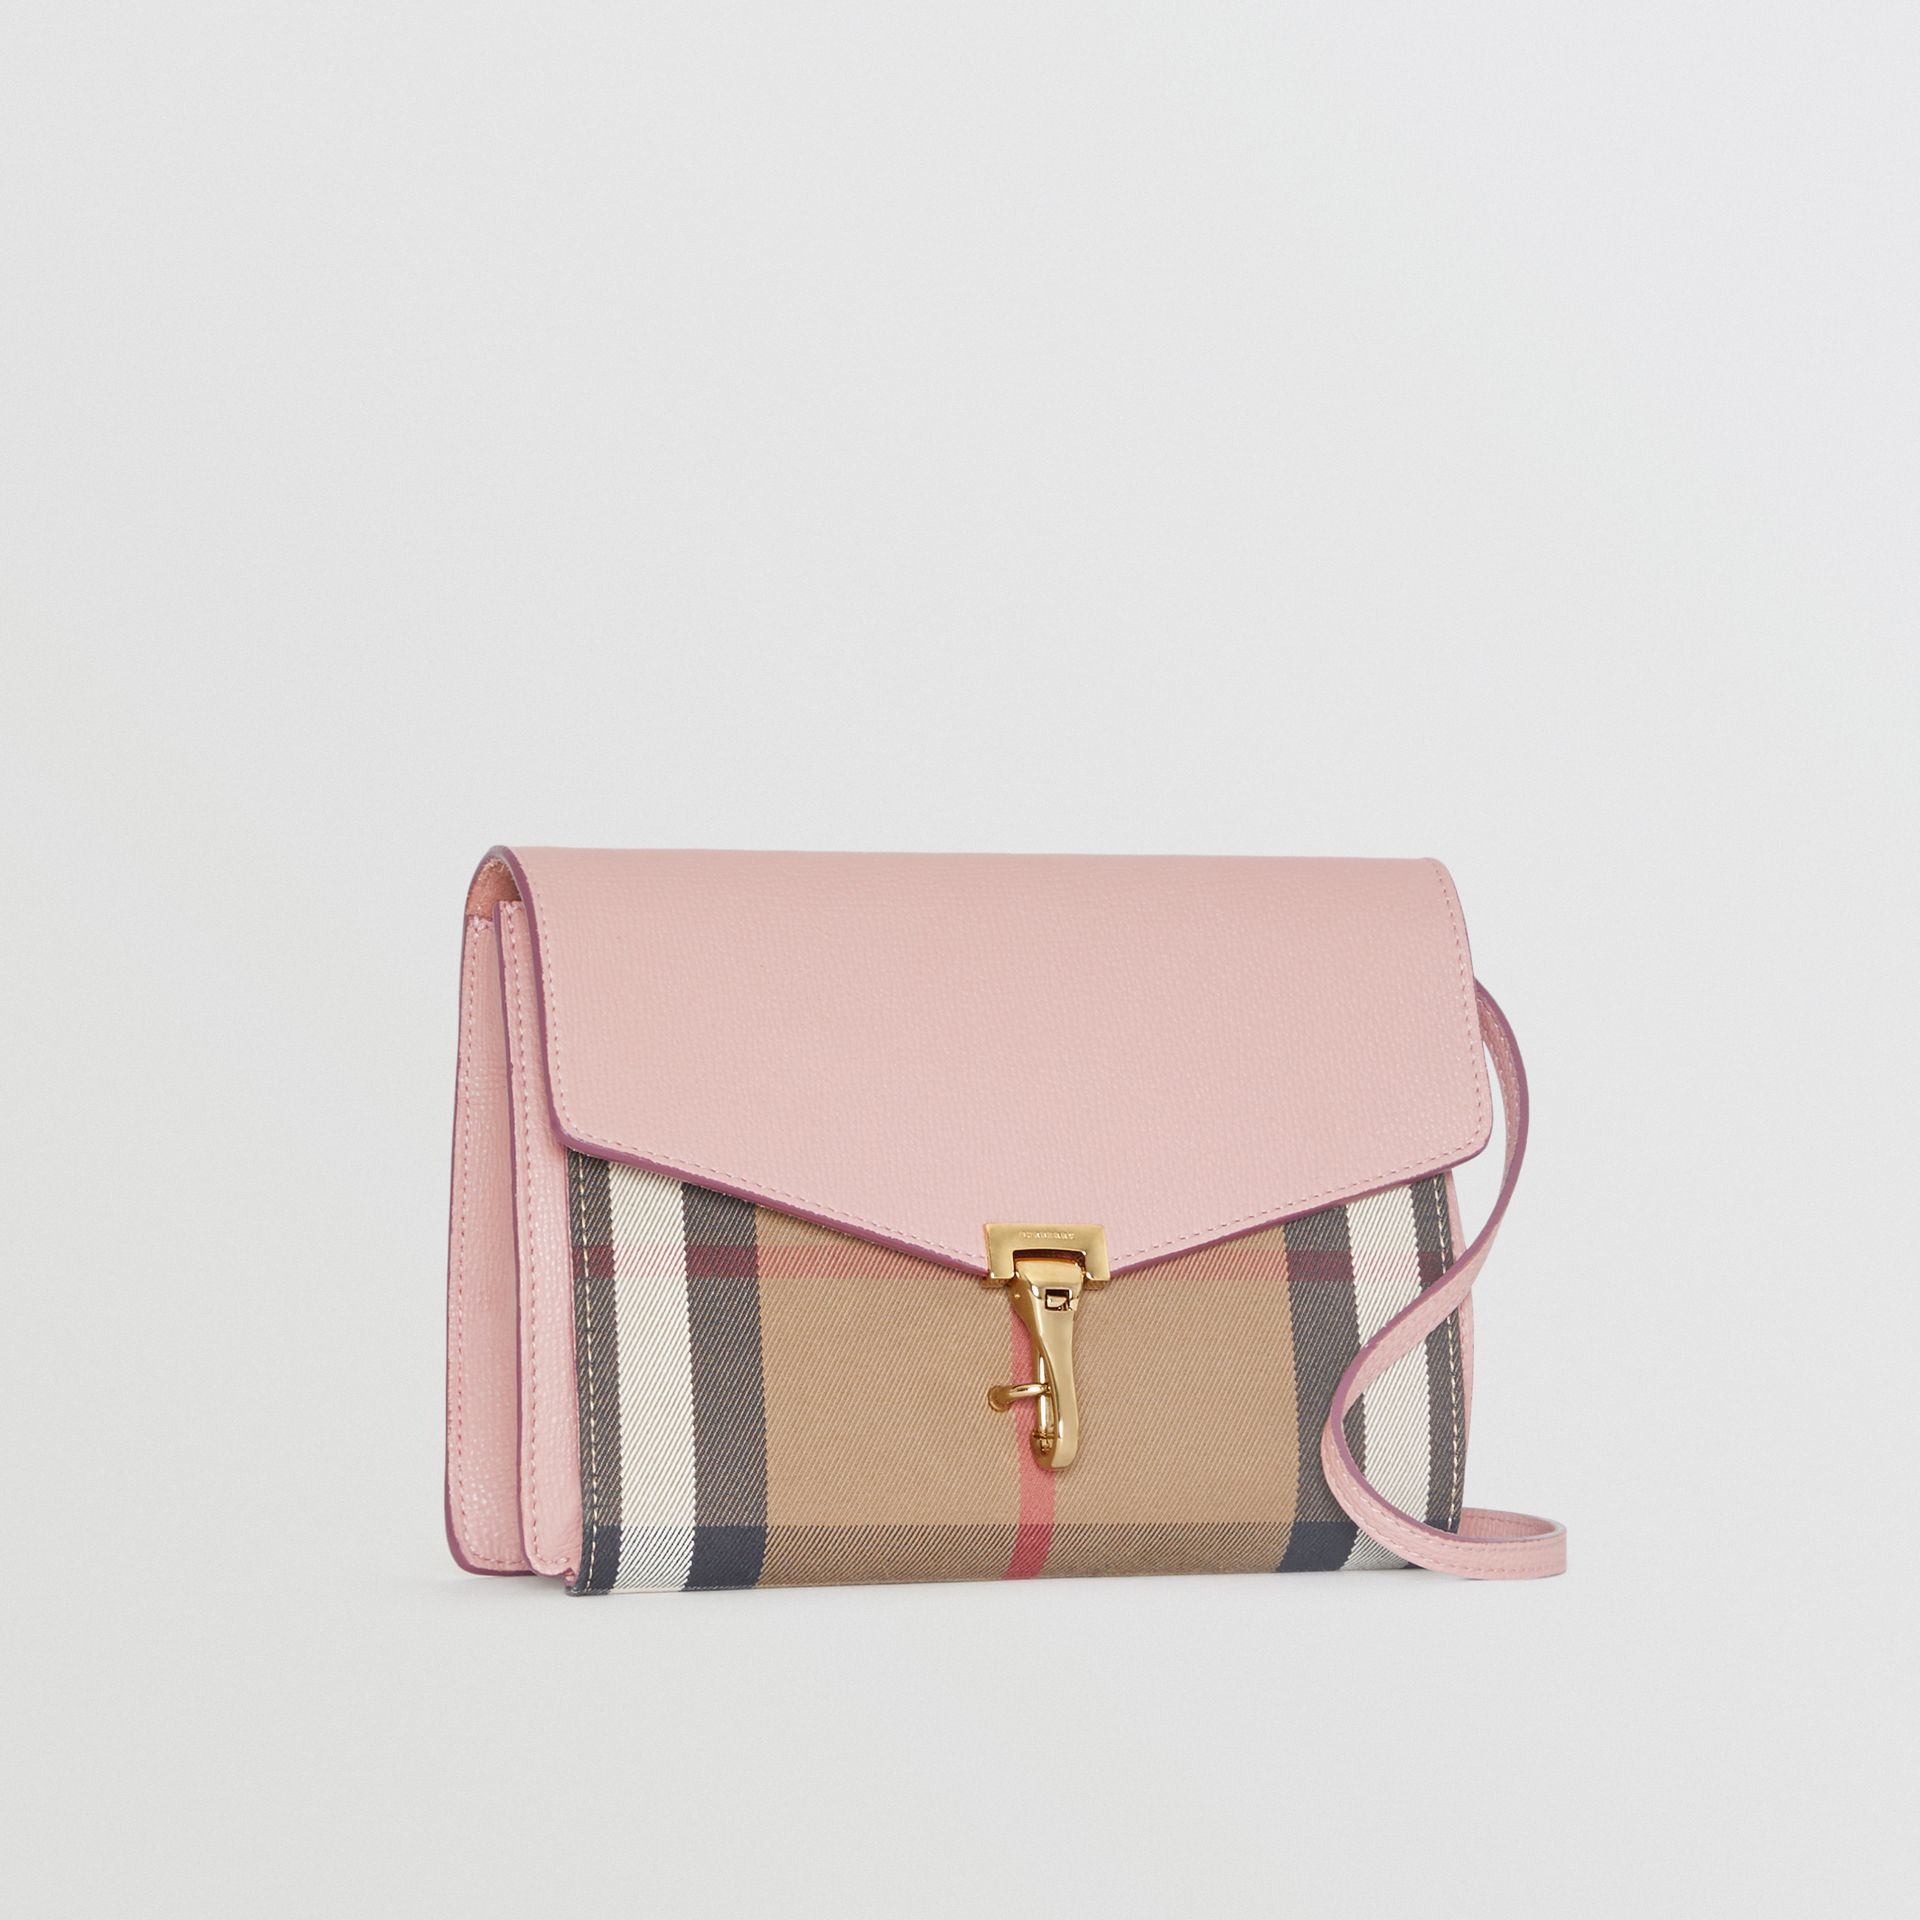 Small Leather and House Check Crossbody Bag in Pale Orchid - Women | Burberry United Kingdom - gallery image 6